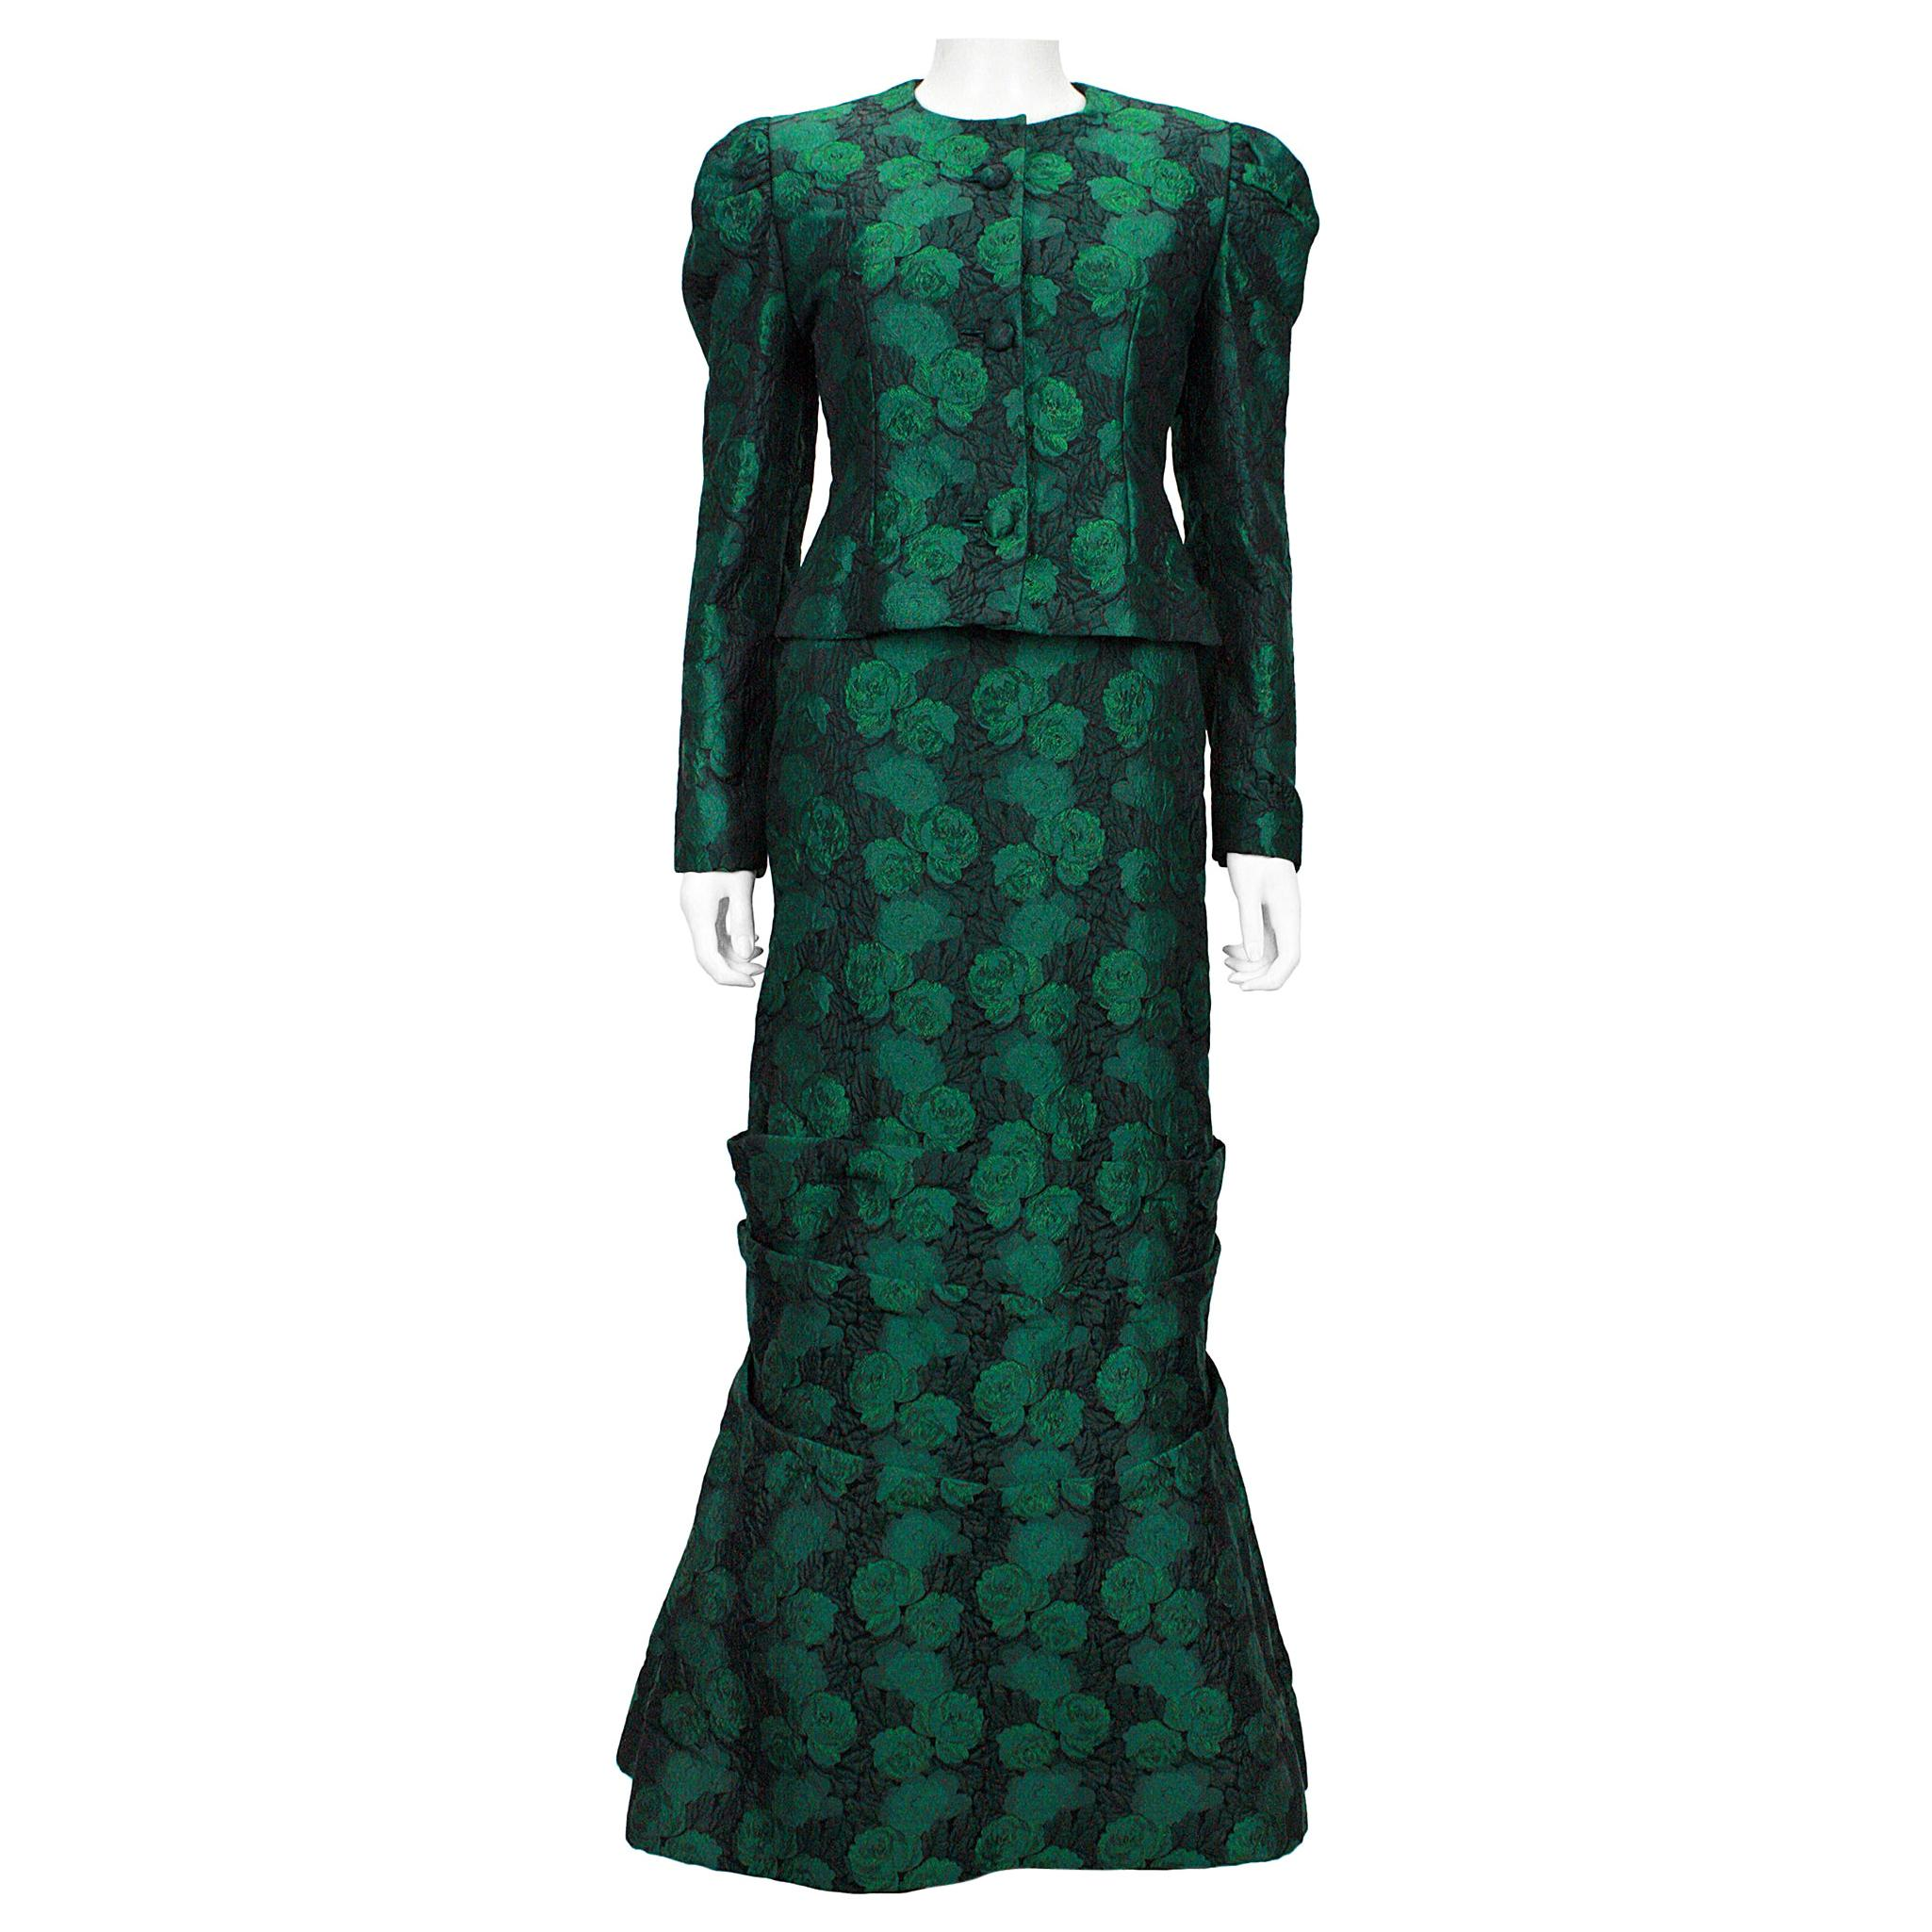 1980s Scaasi Off The Shoulder Green & Black Floral Brocade Gown with Jacket